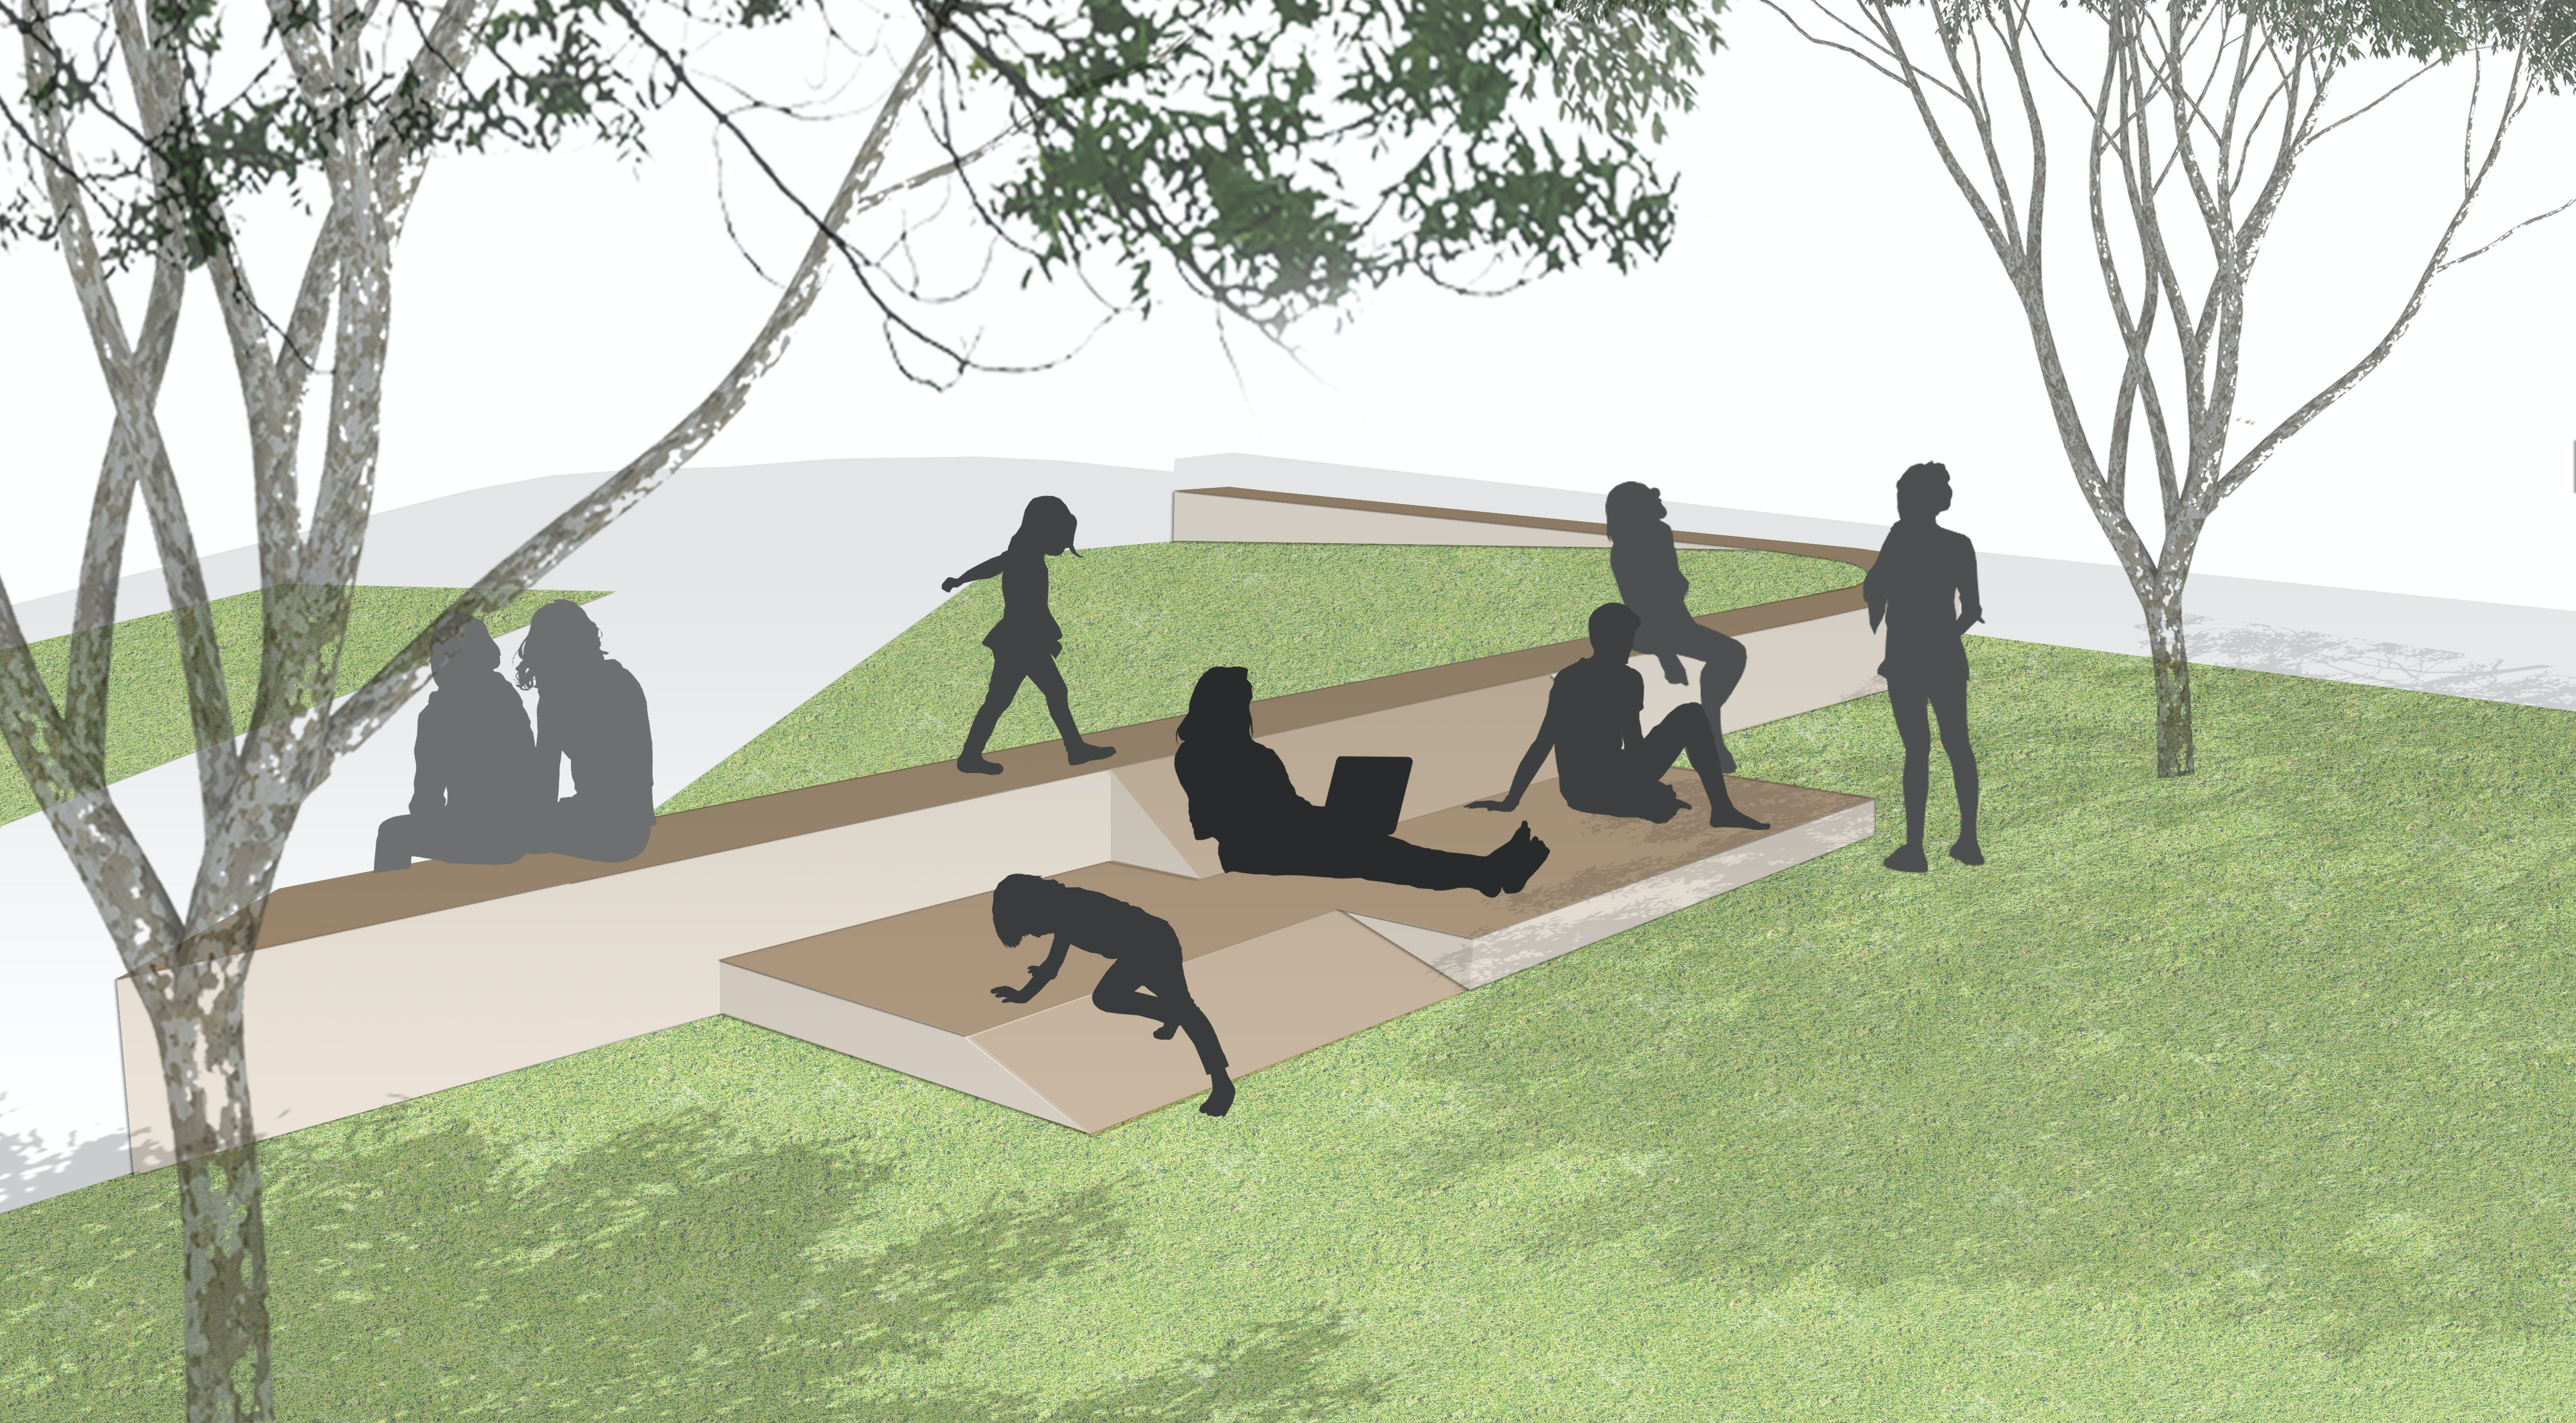 Brick Lounger concept drawing